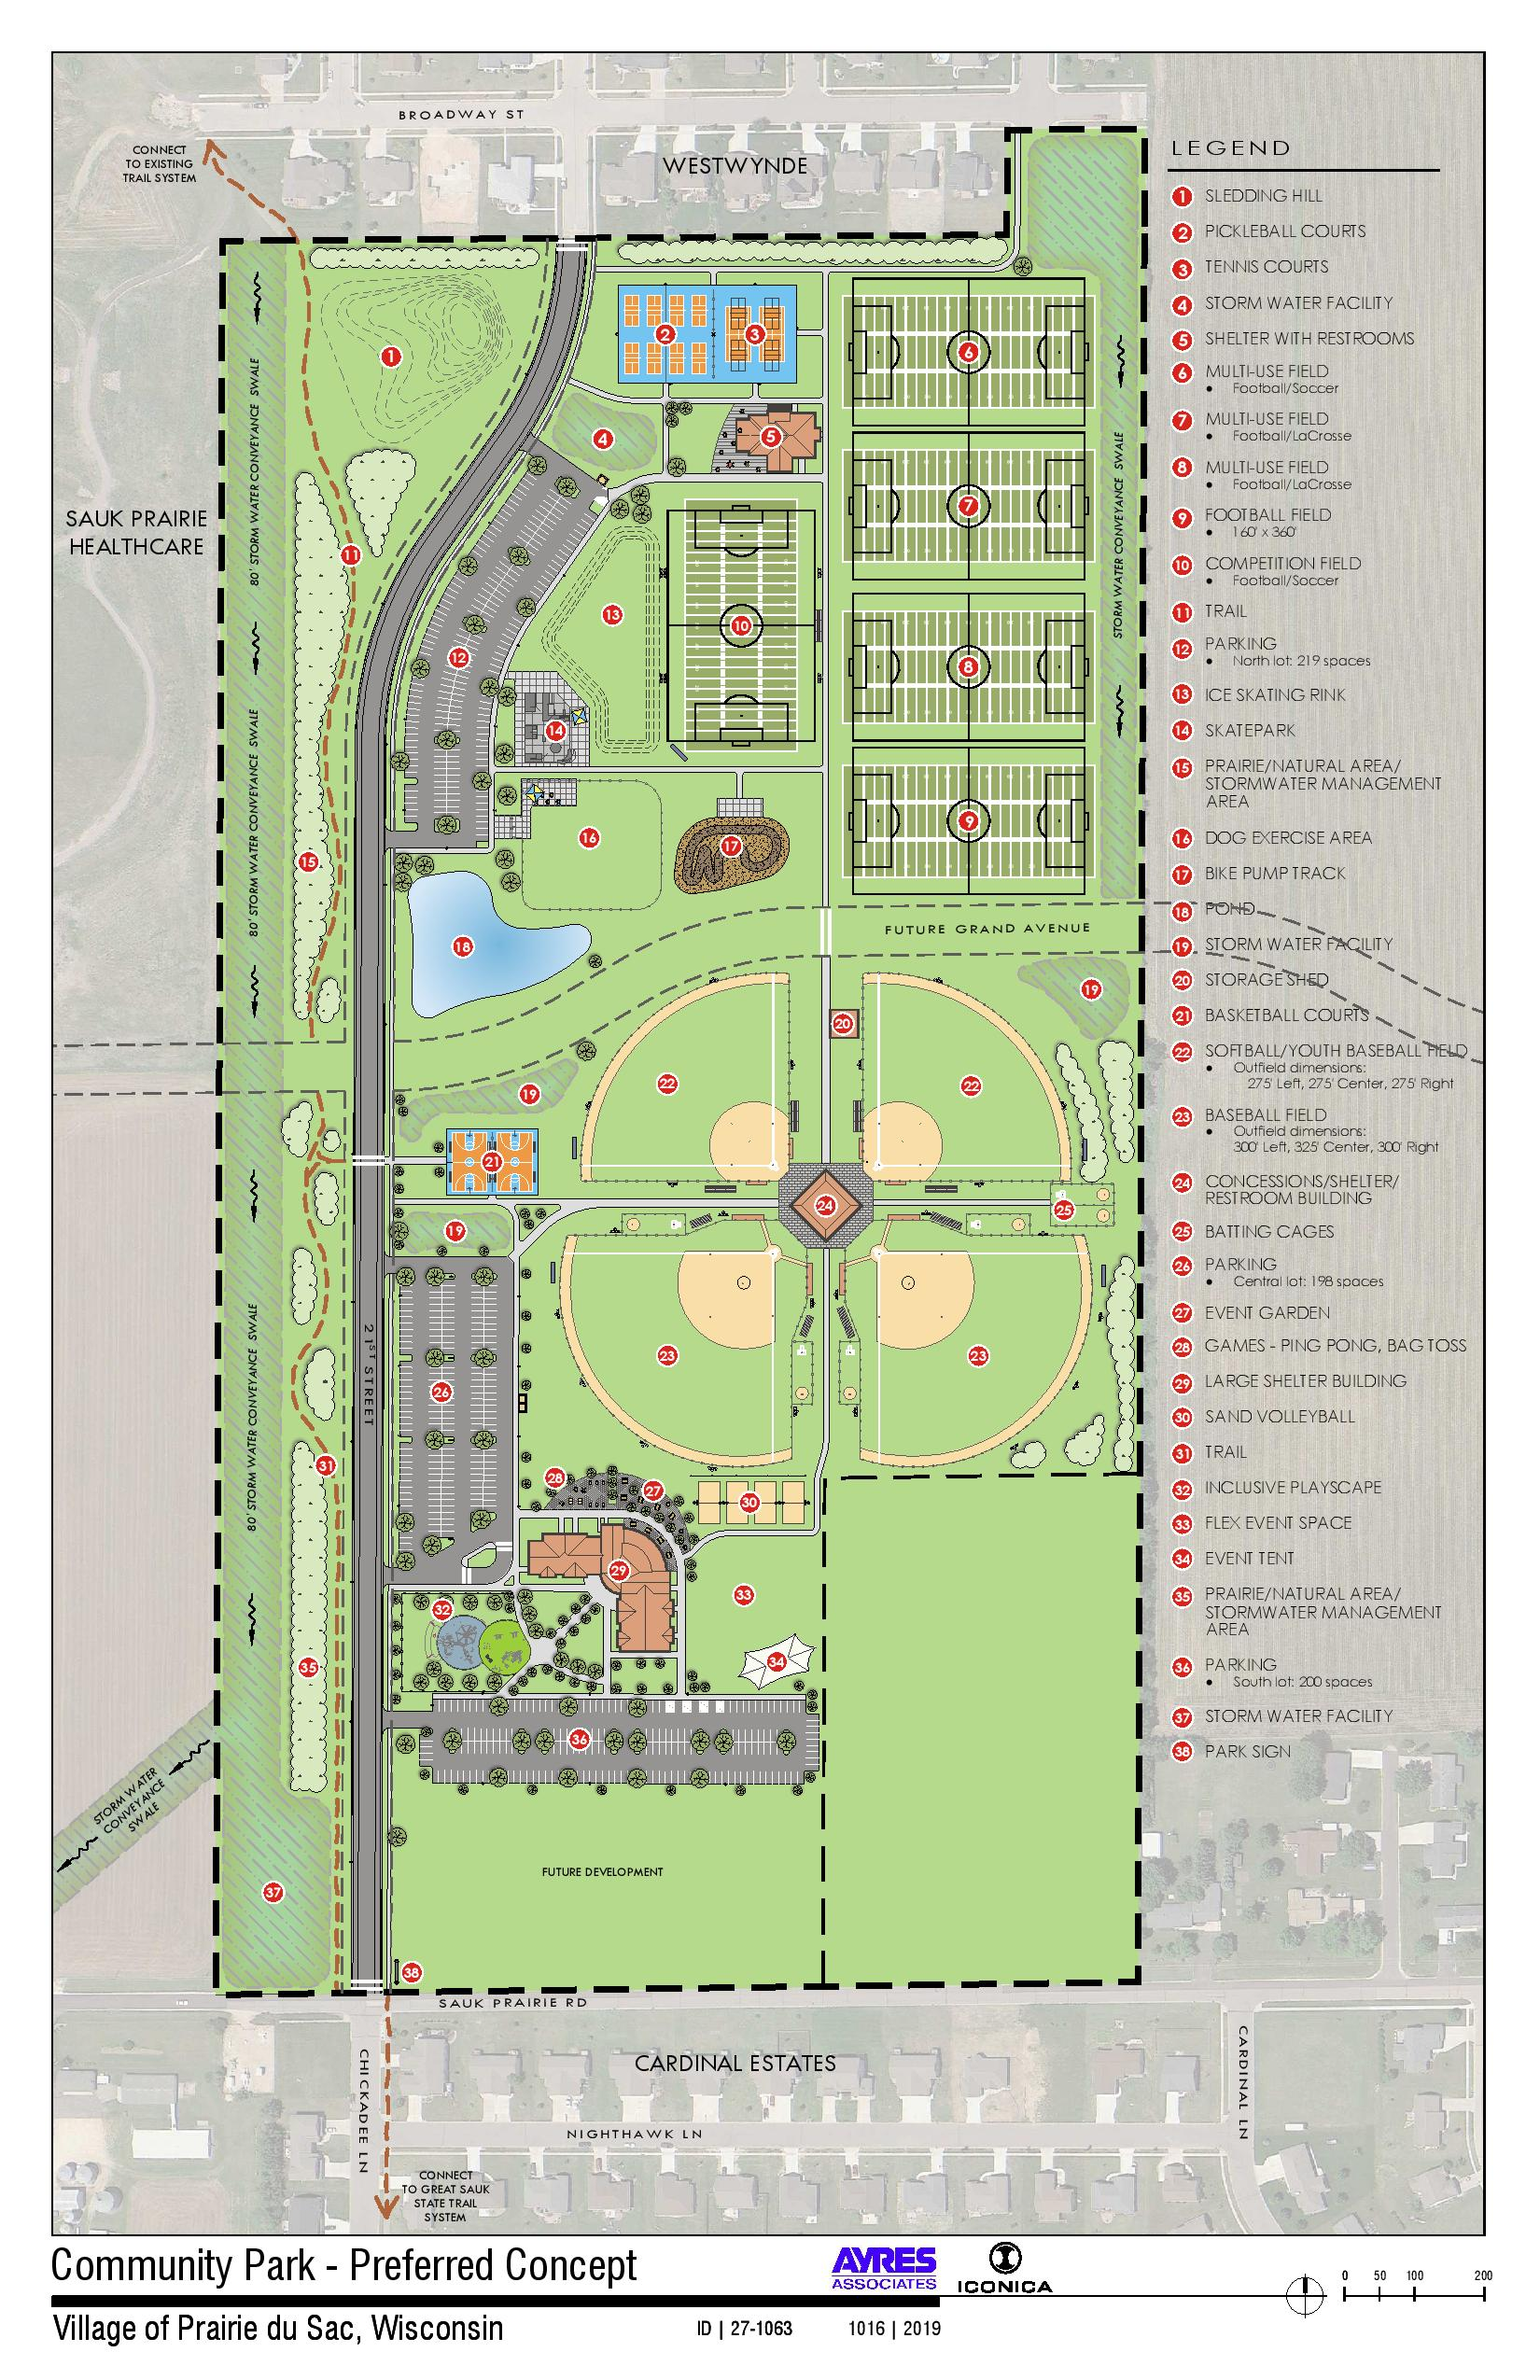 A full look at the Culver Community Park development plans